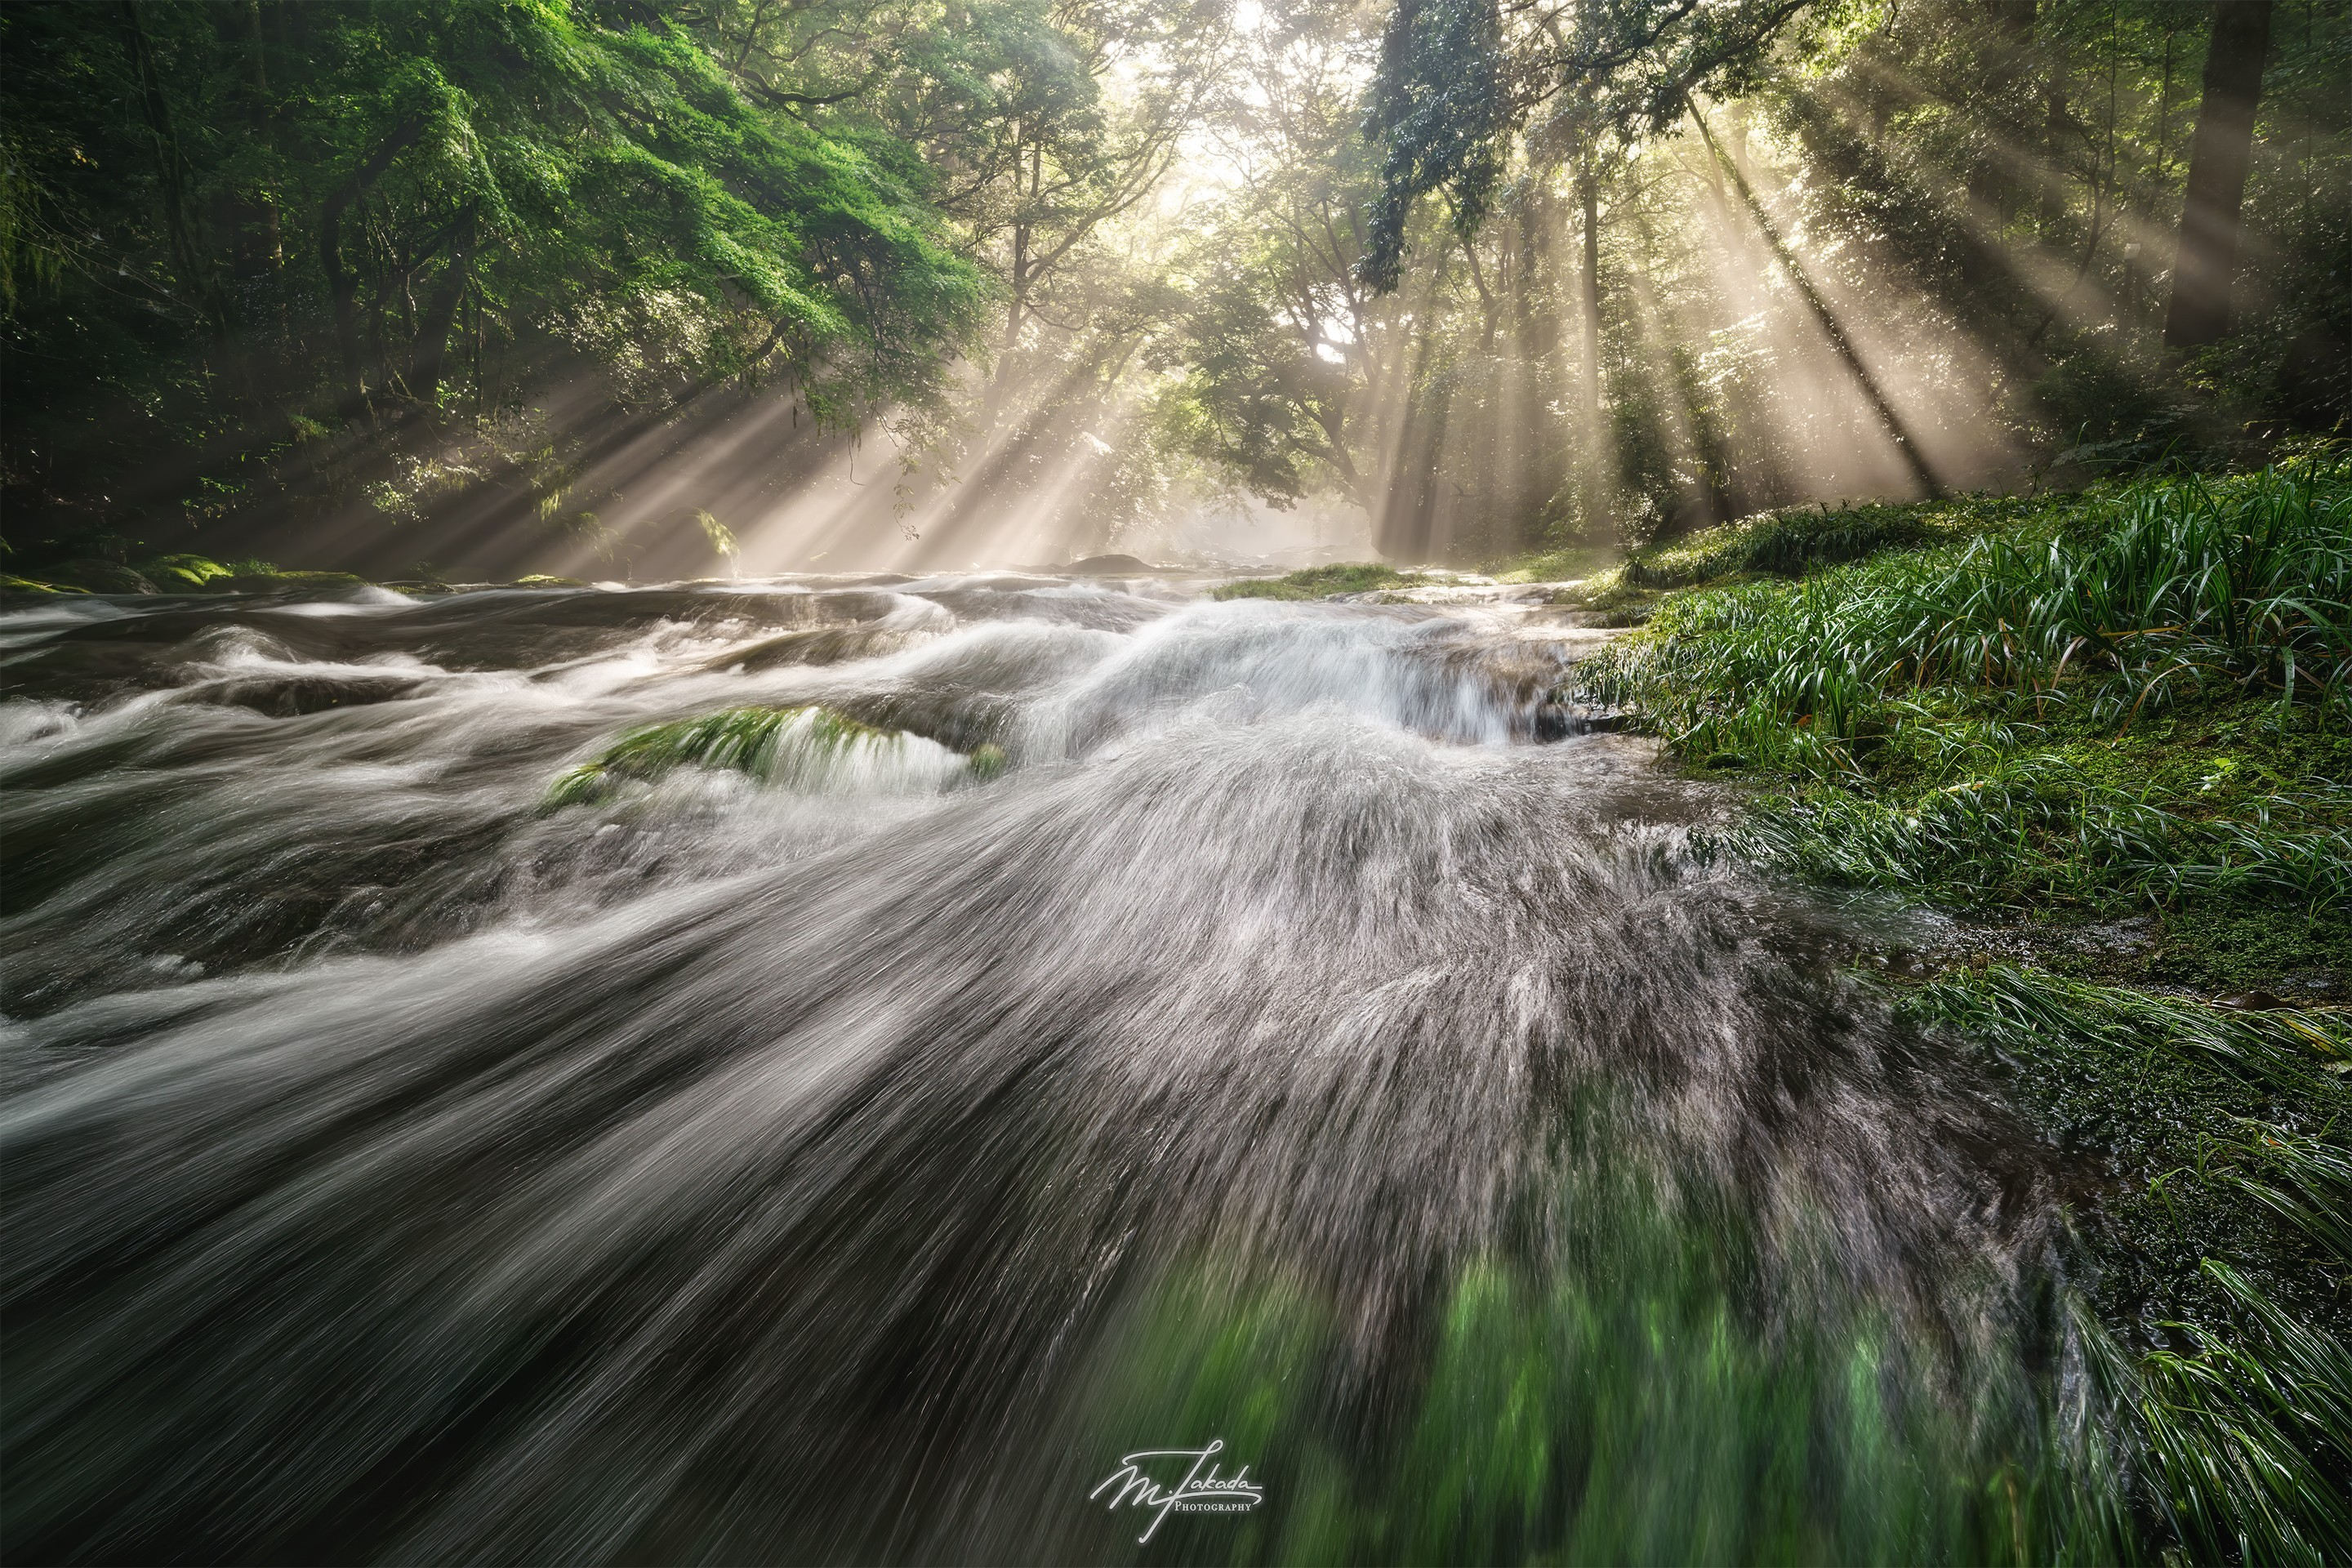 Flow of light and water